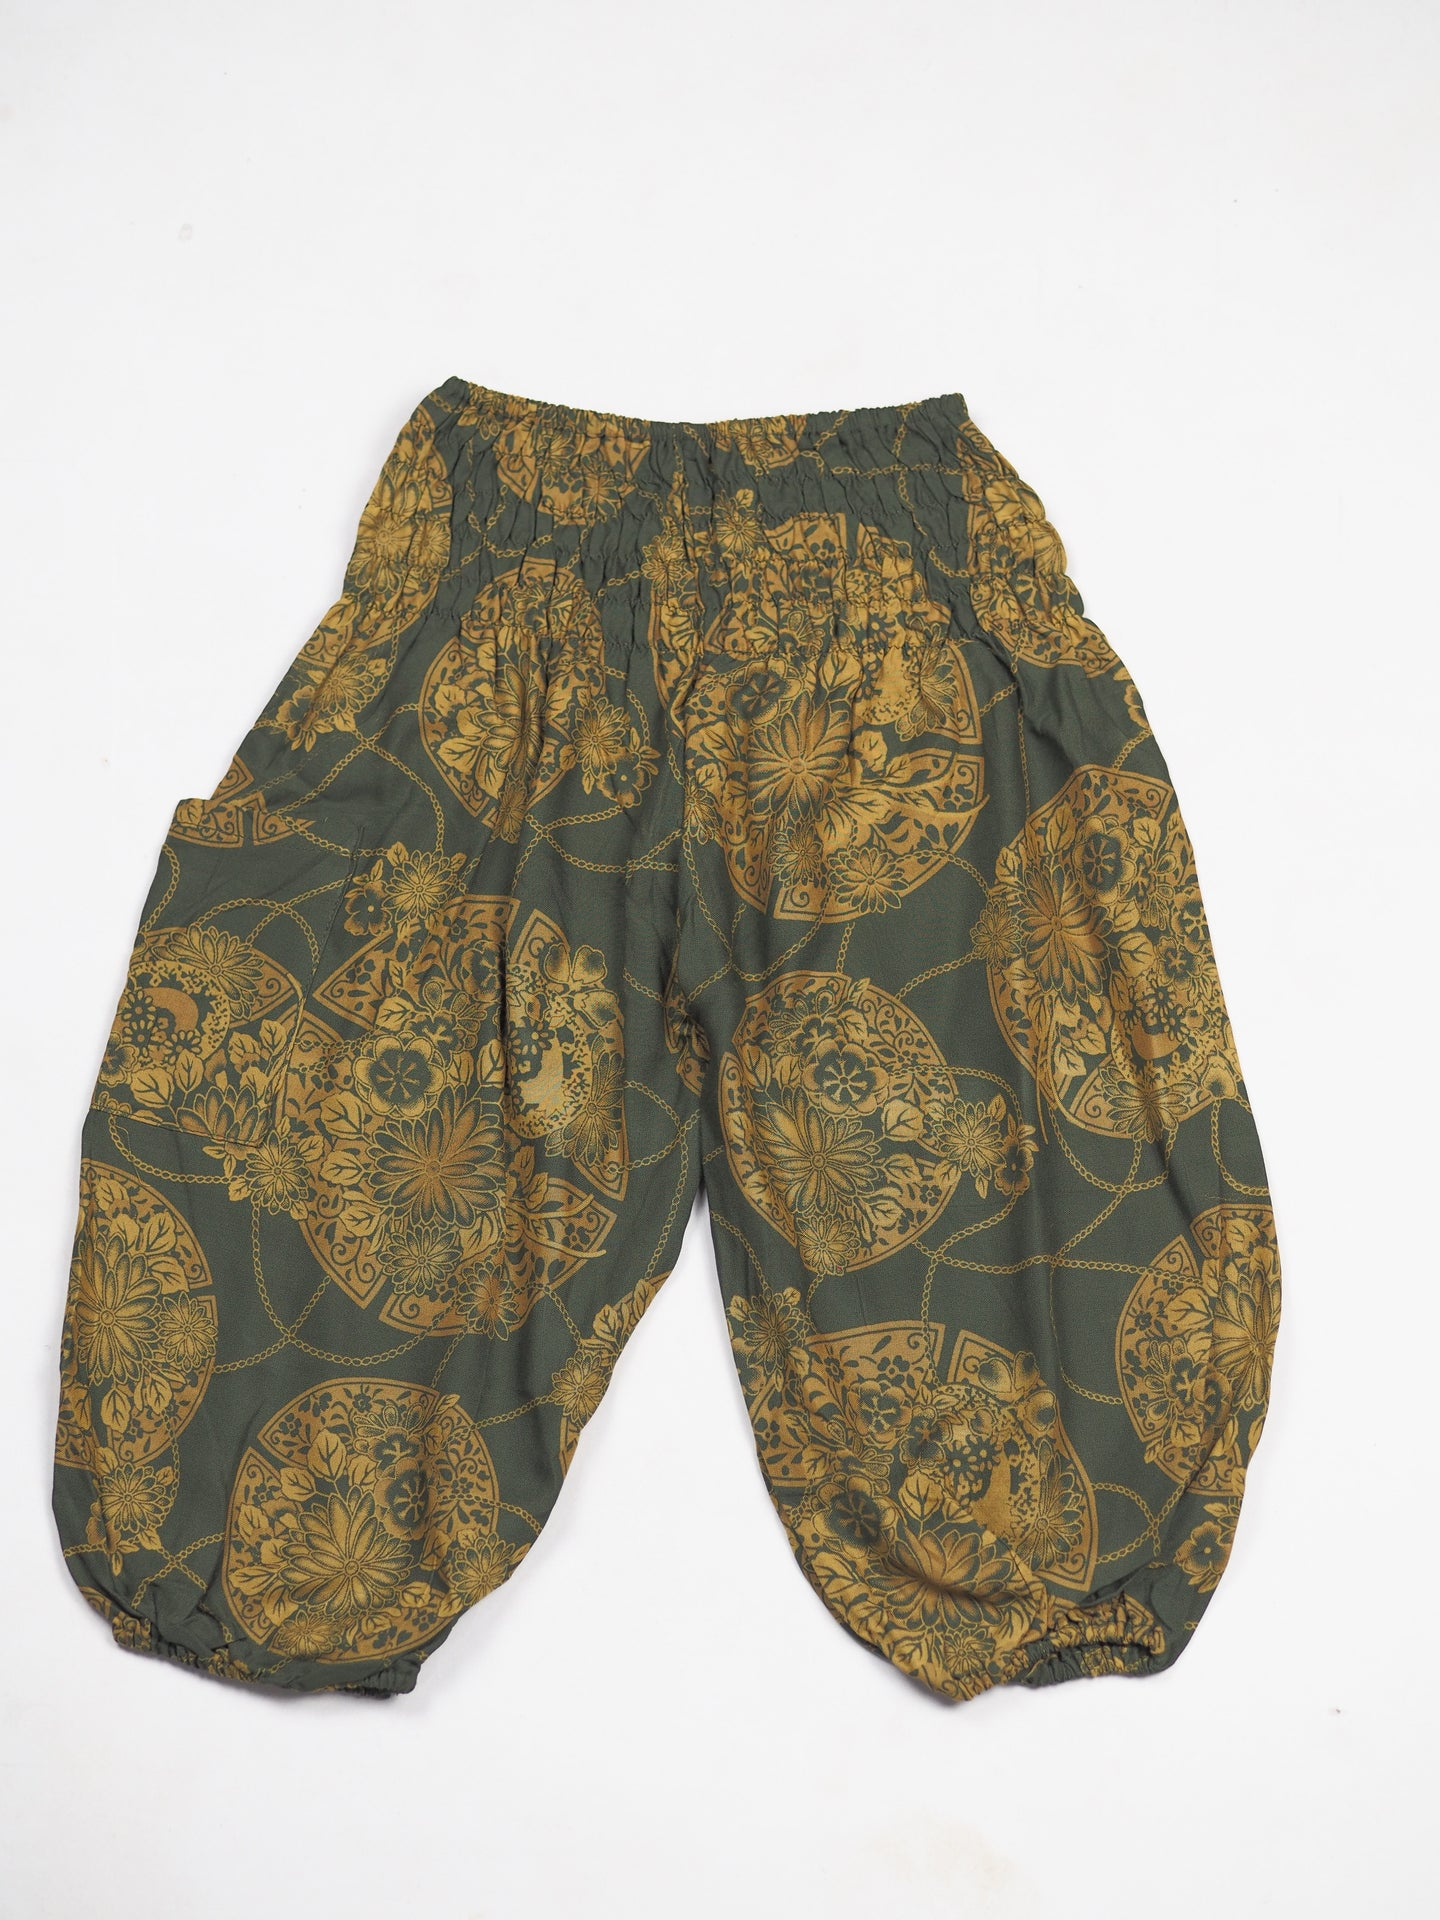 Floral Classic Unisex Kid Harem Pants in Green PP0004 020098 07